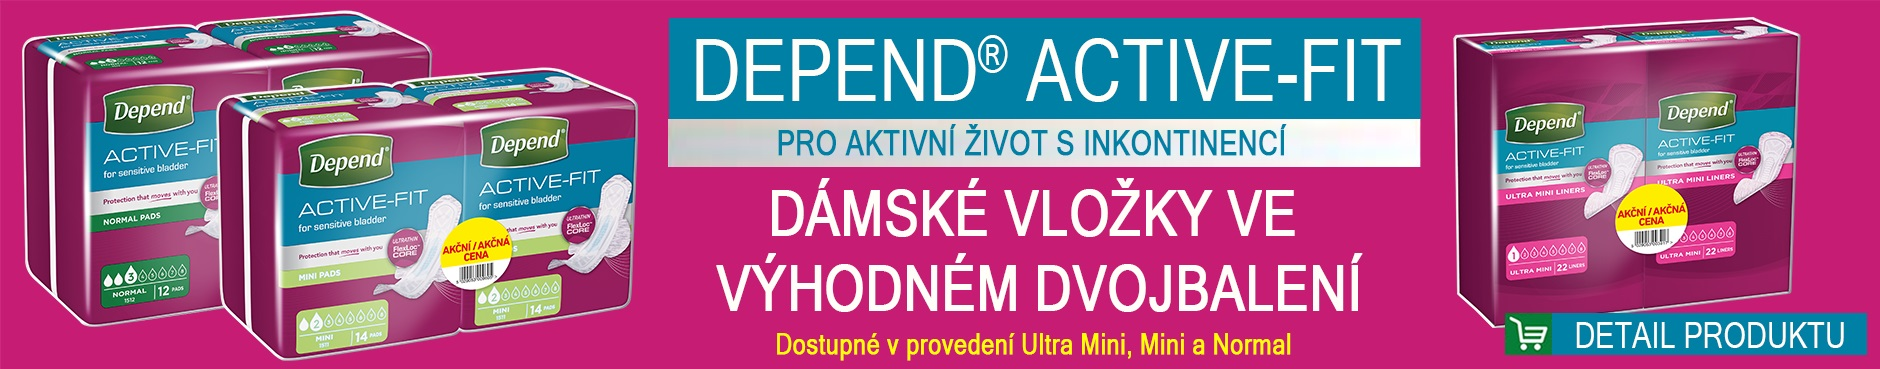 Depend Duopack Active-Fit vložky